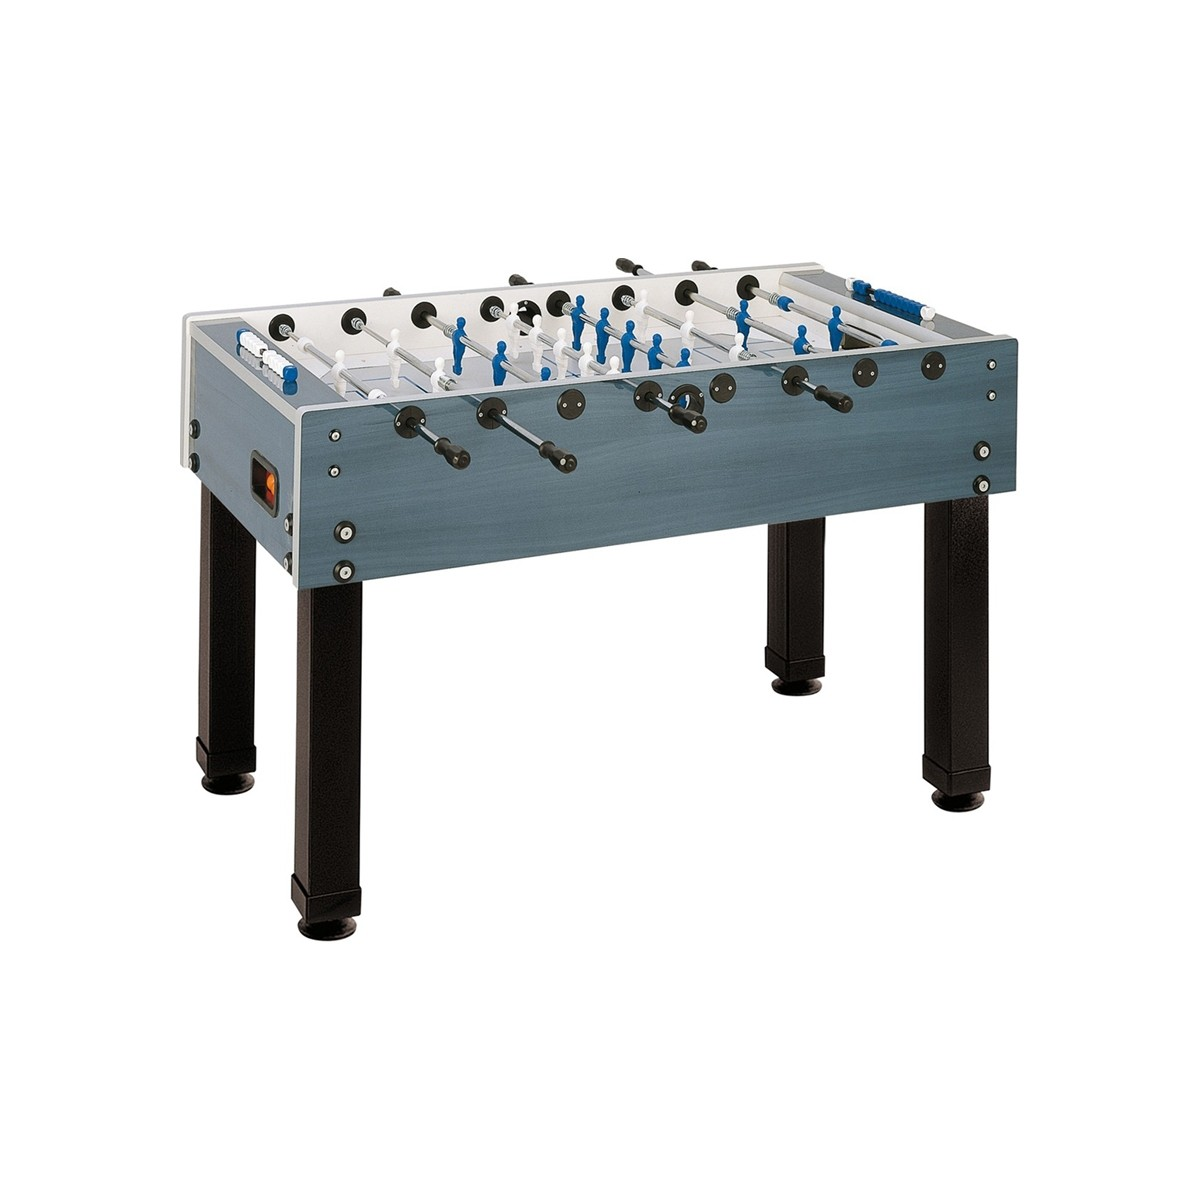 Garlando 500 Outdoor Foosball Table $1799.00 Foosball Tables